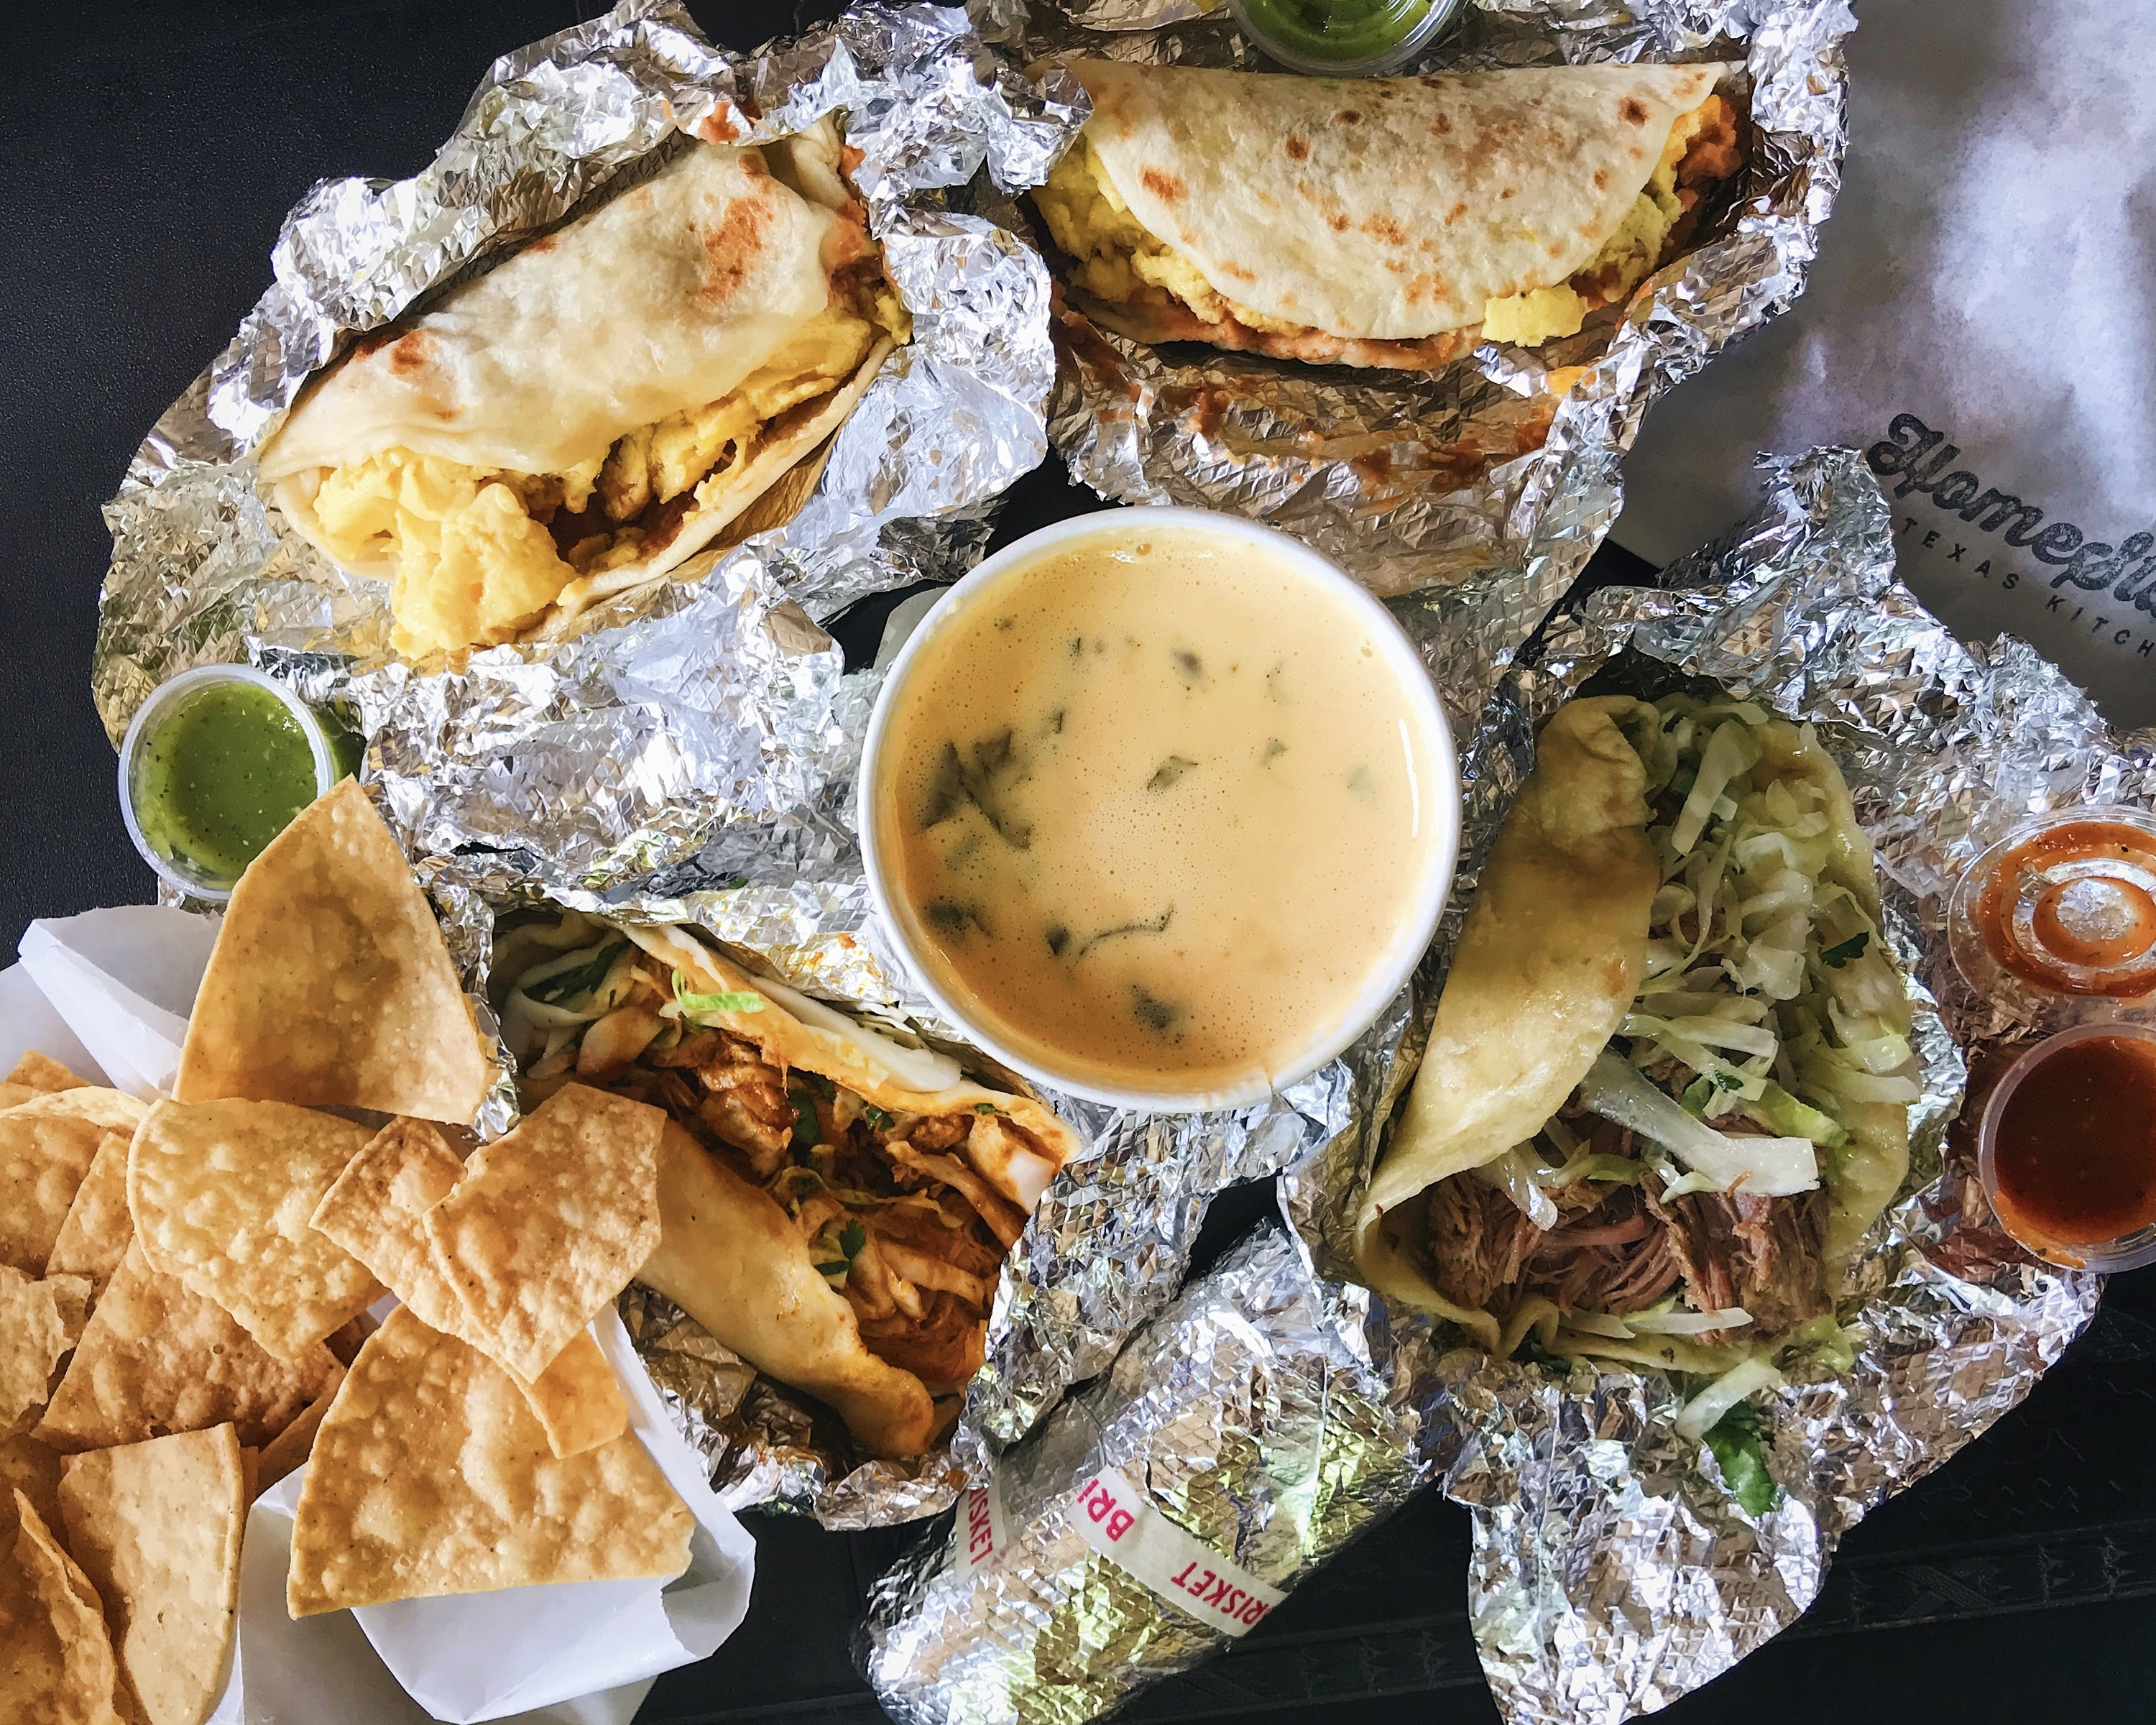 HomeState breakfast tacos and queso